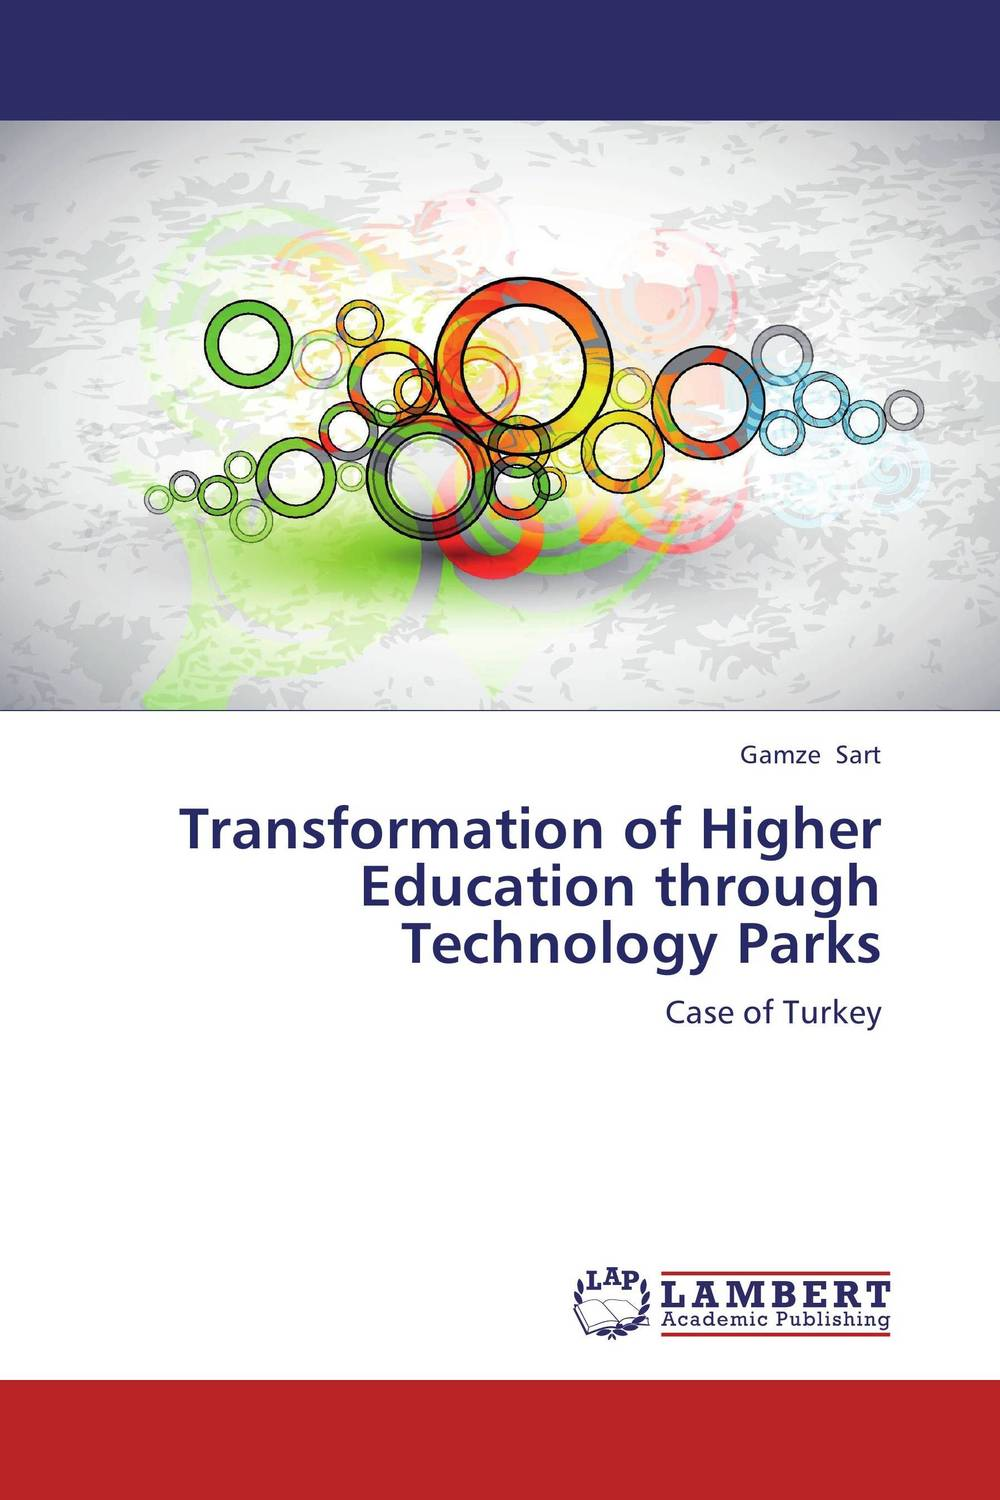 Transformation of Higher Education through Technology Parks viruses cell transformation and cancer 5